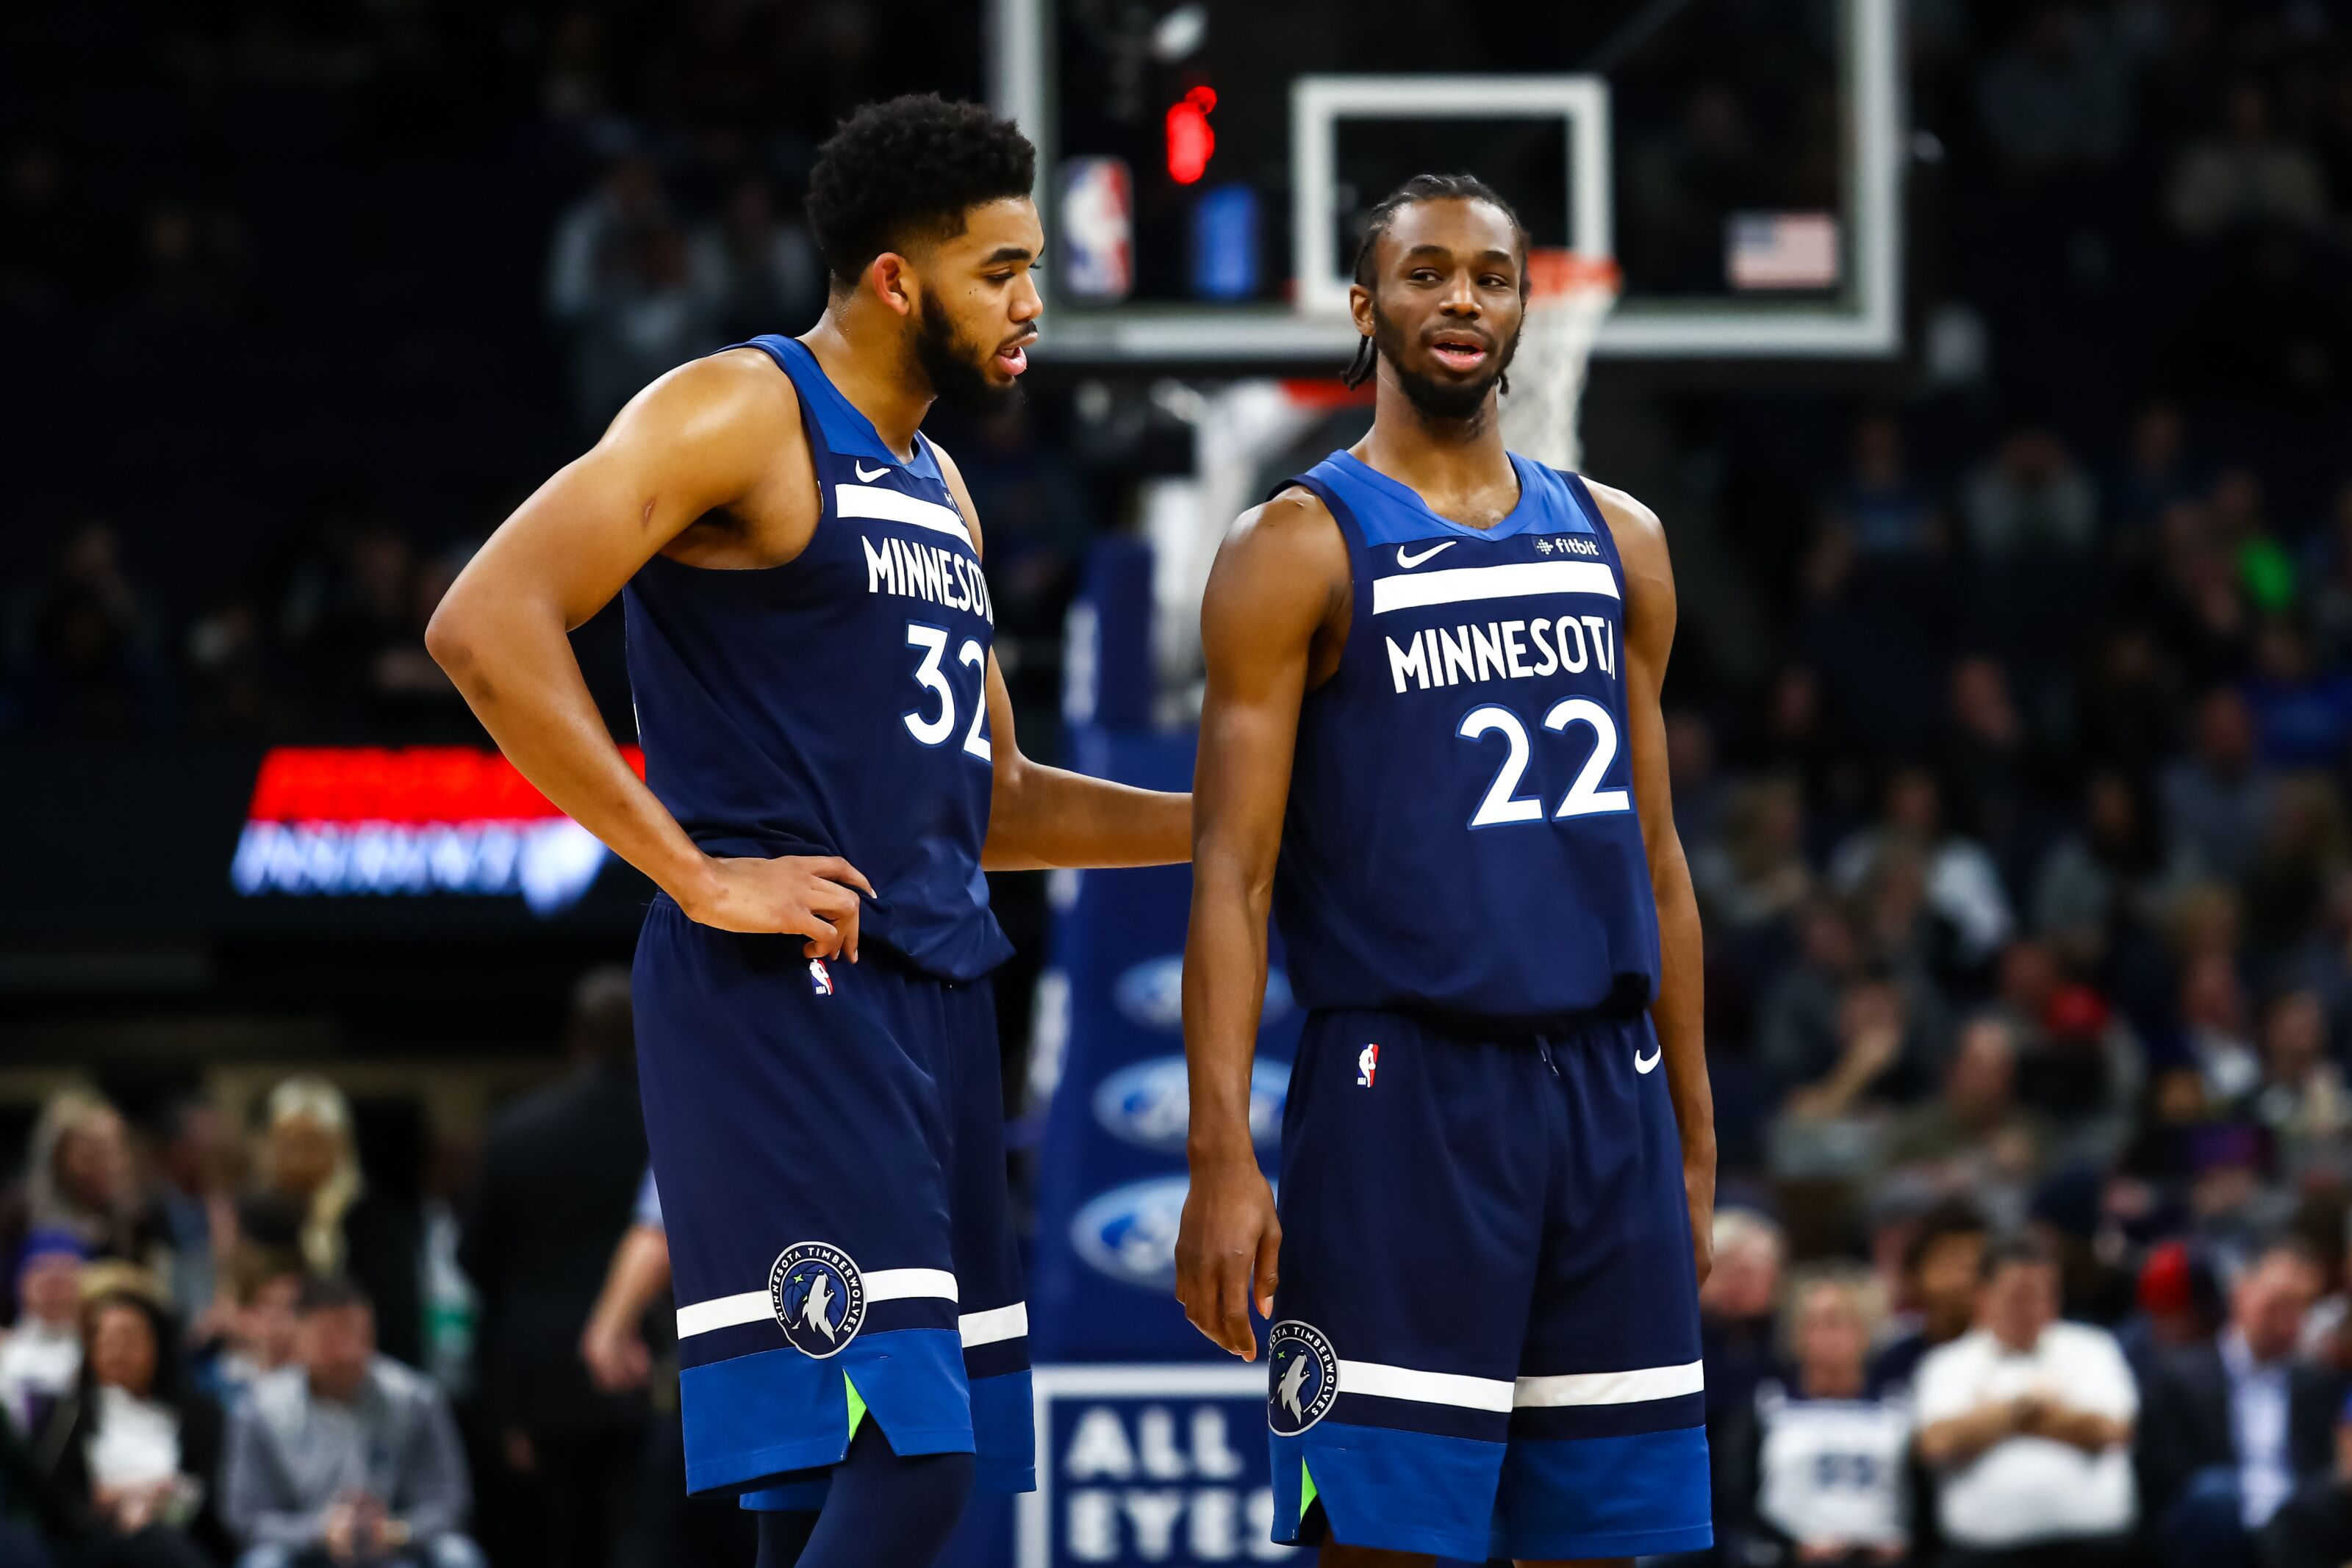 NBA Season Preview 2019-20: The 5 biggest questions for the Minnesota Timberwolves